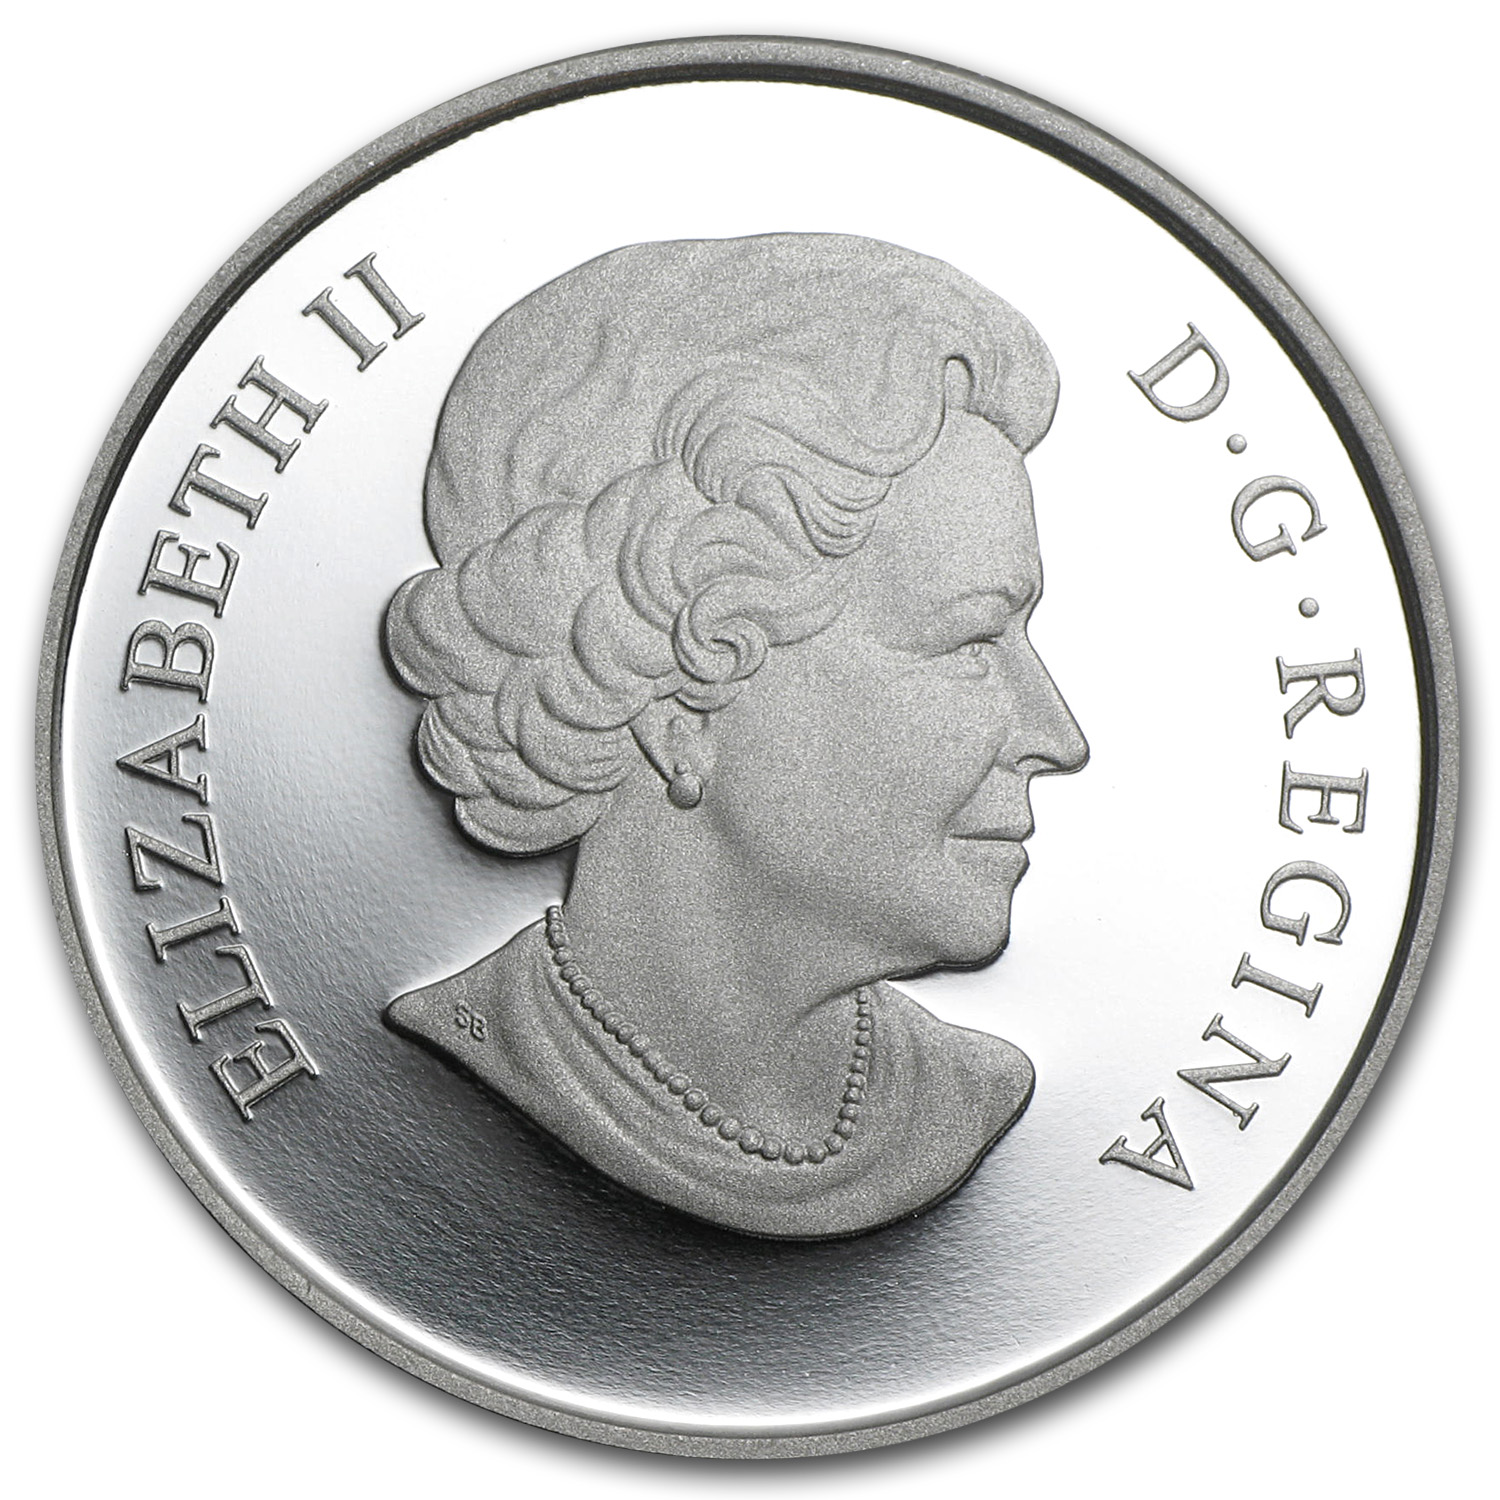 2013 Canada 1 oz Silver $25 An Allegory